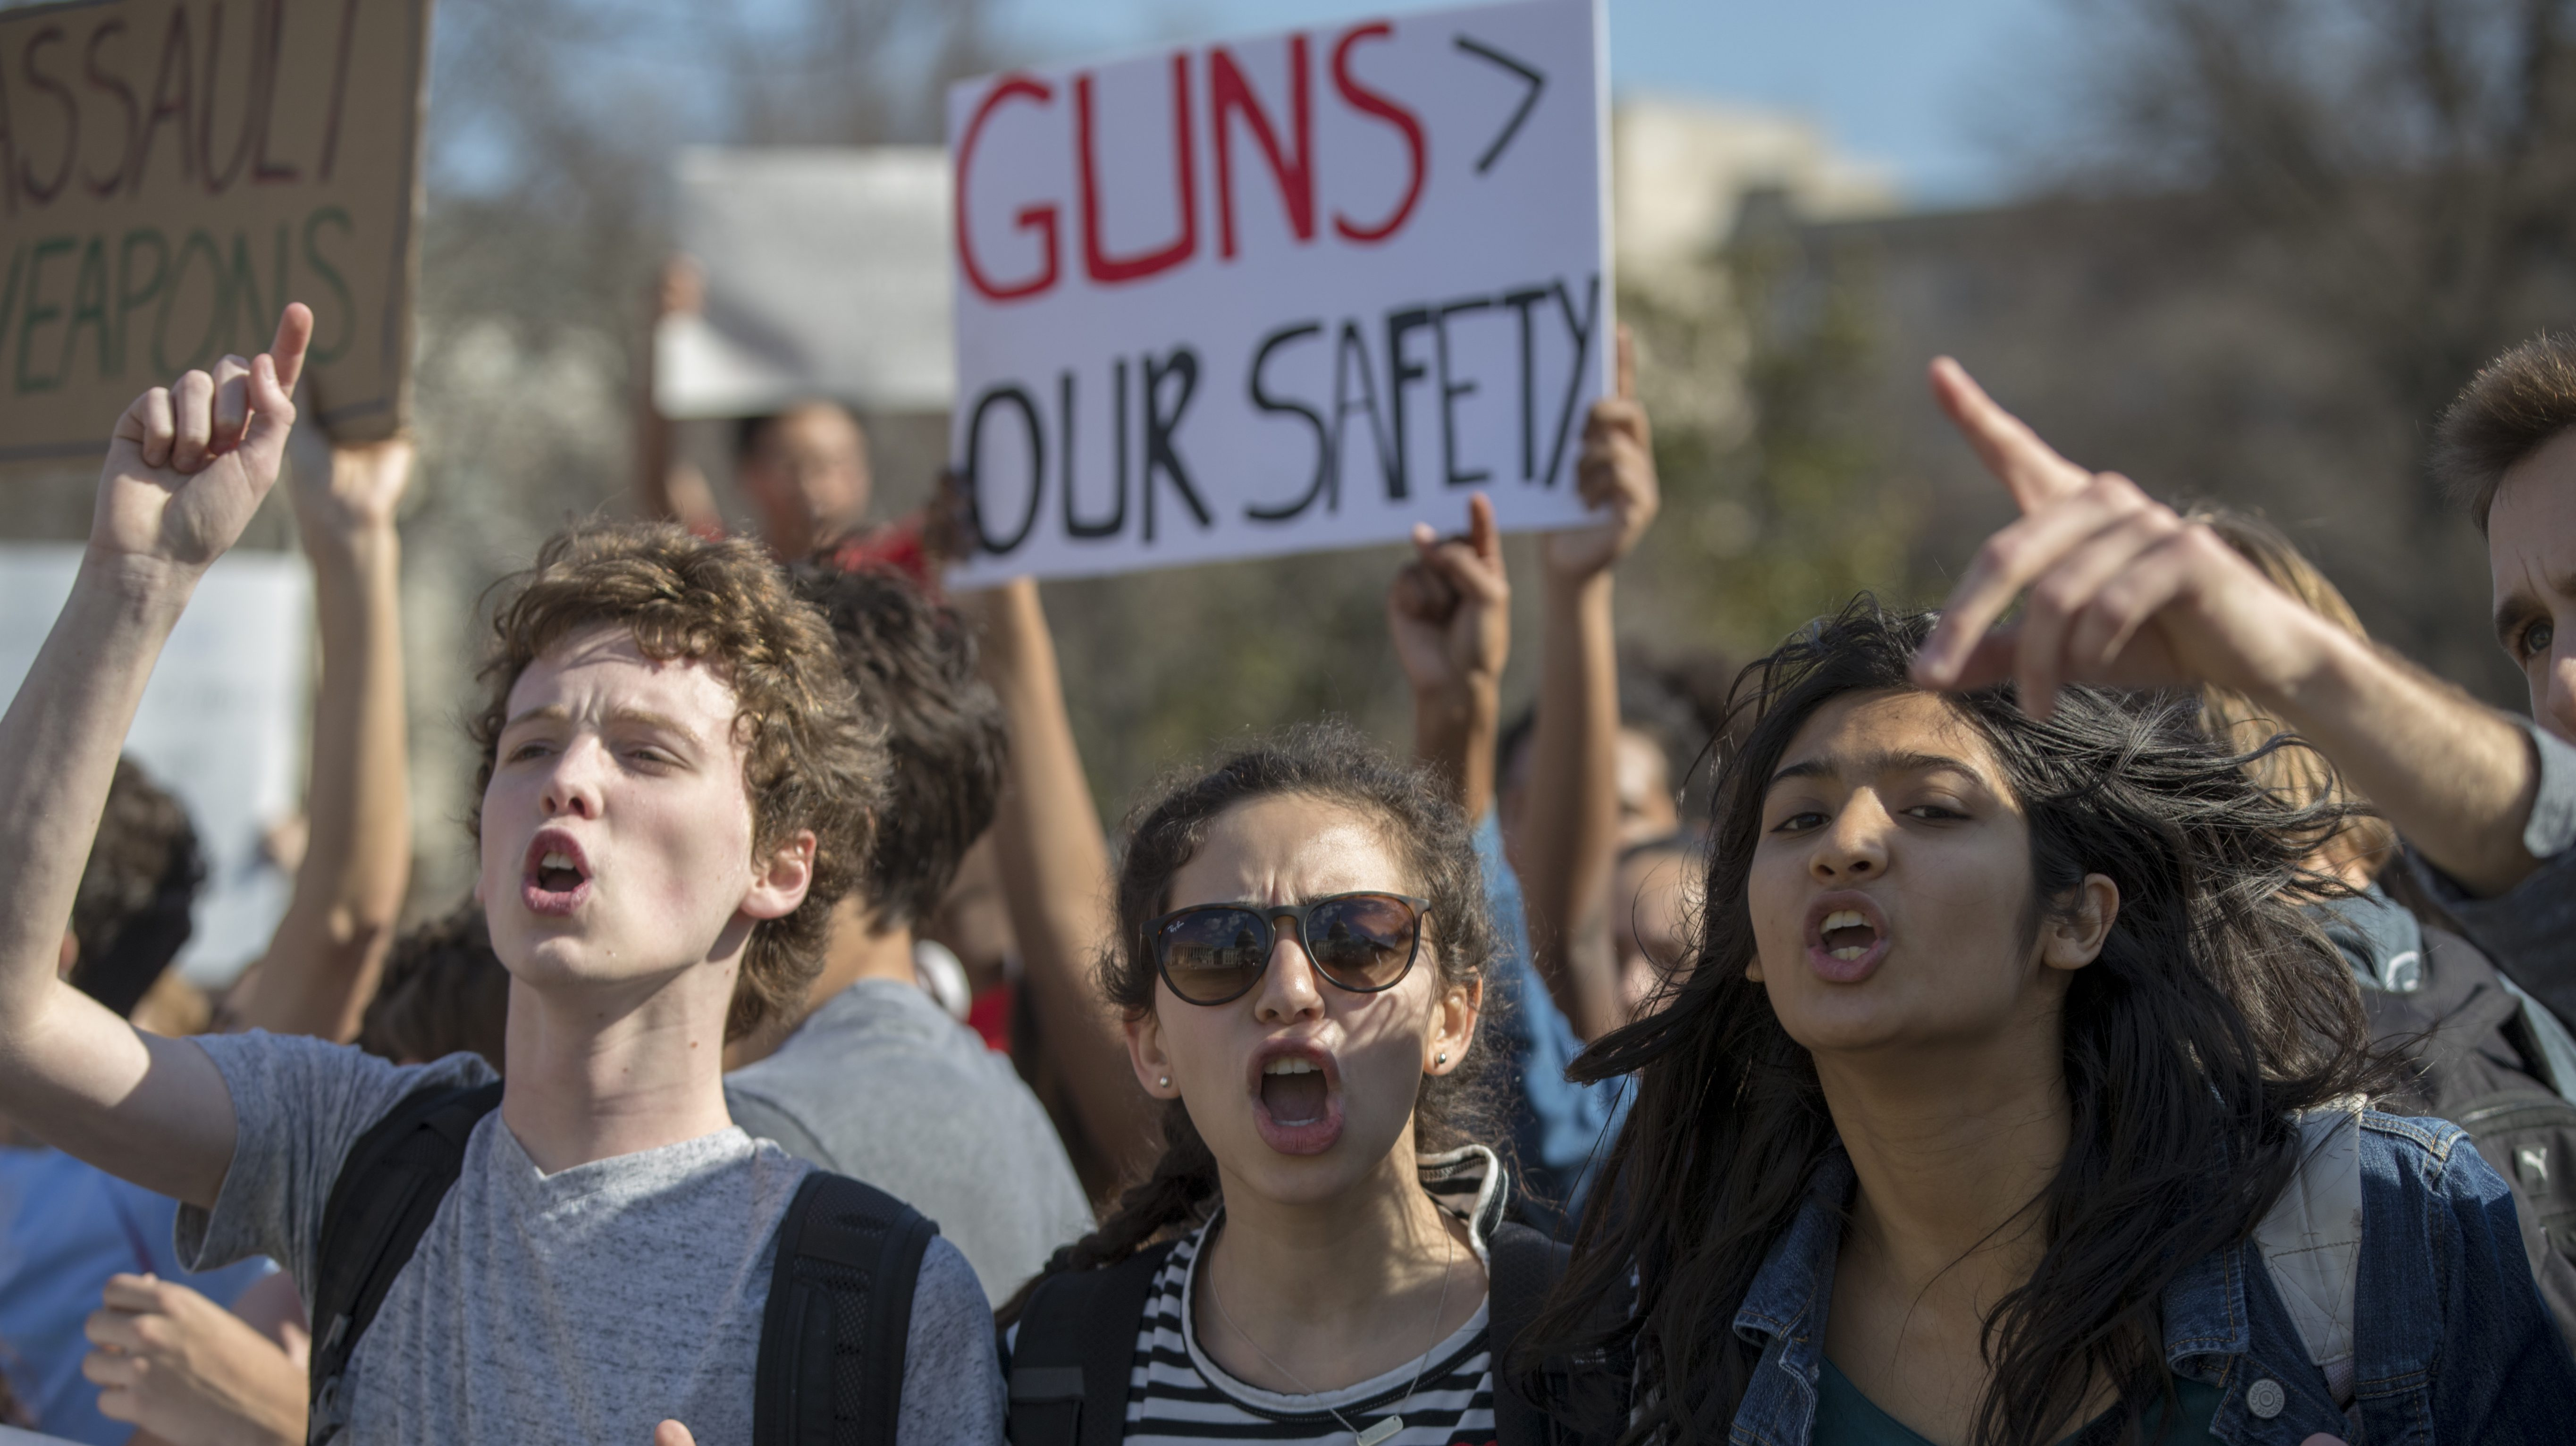 School students from Montgomery County, Md., in suburban Washington, rally in solidarity with those affected by the shooting at Parkland High School in Florida, at the Capitol in Washington, Wednesday, Feb. 21, 2018. (AP Photo/J. Scott Applewhite)